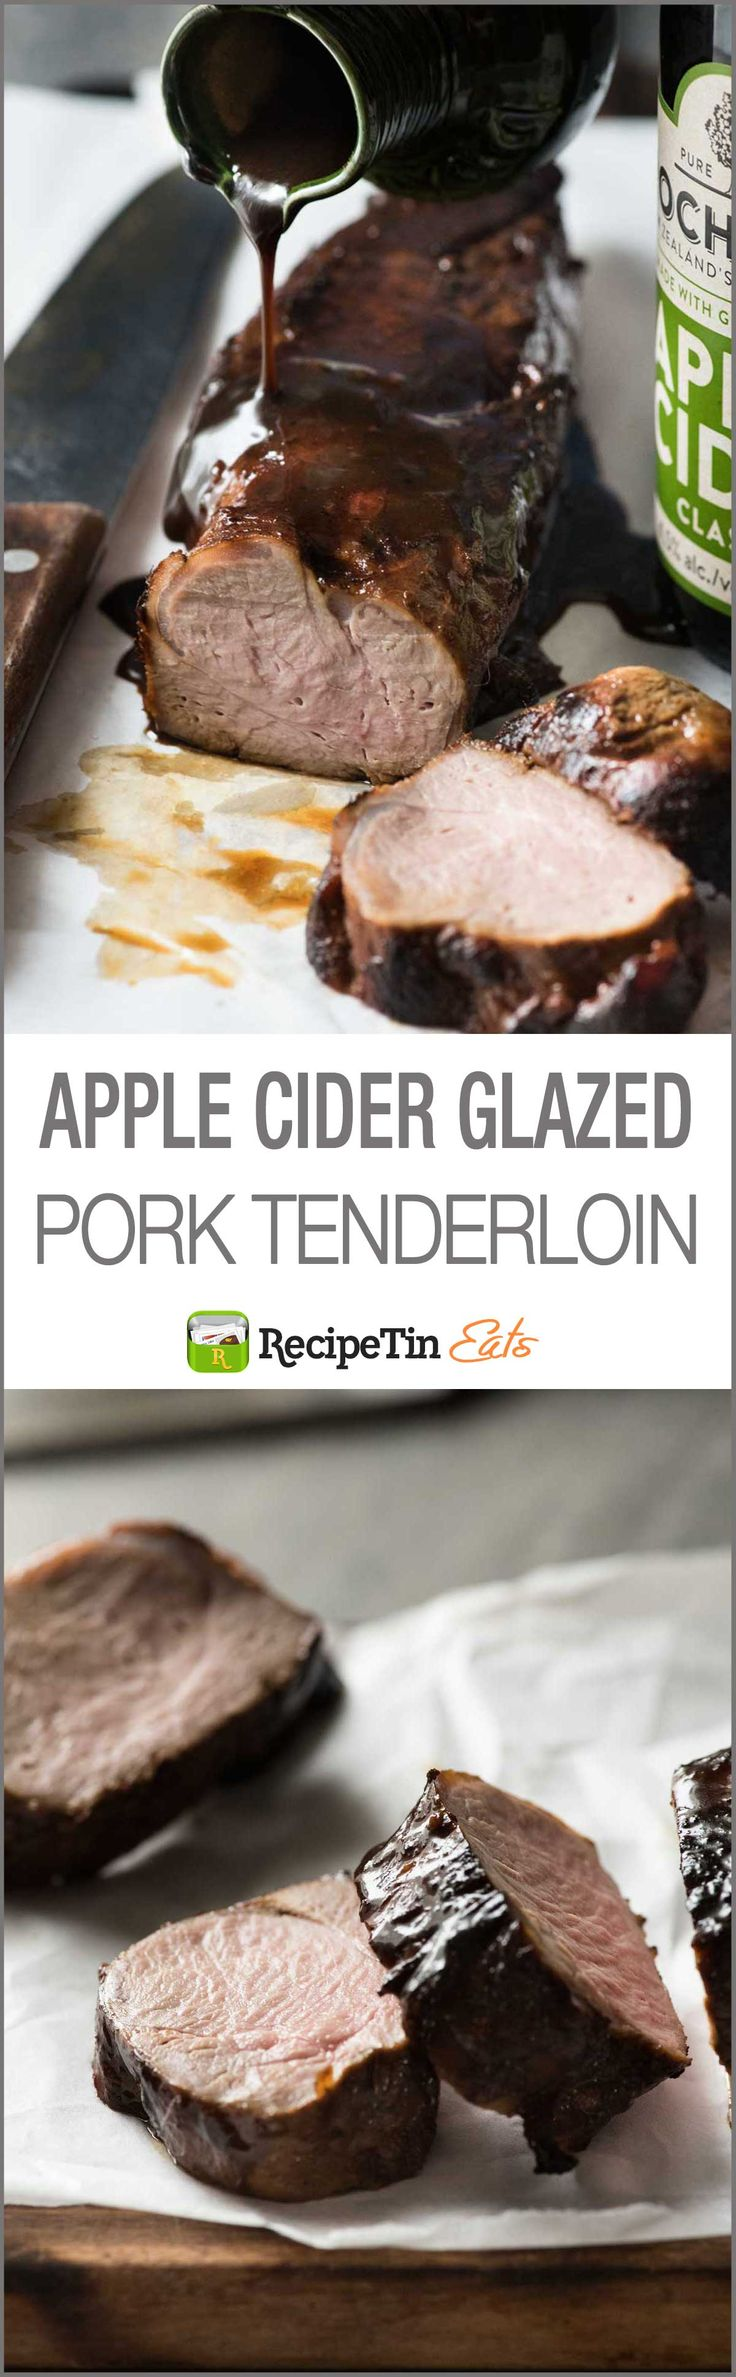 Apple Cider Glazed Pork Tenderloin - Apple Cider is a secret weapon to marinade pork tenderloin so it's juicy AND to make an incredible glaze!